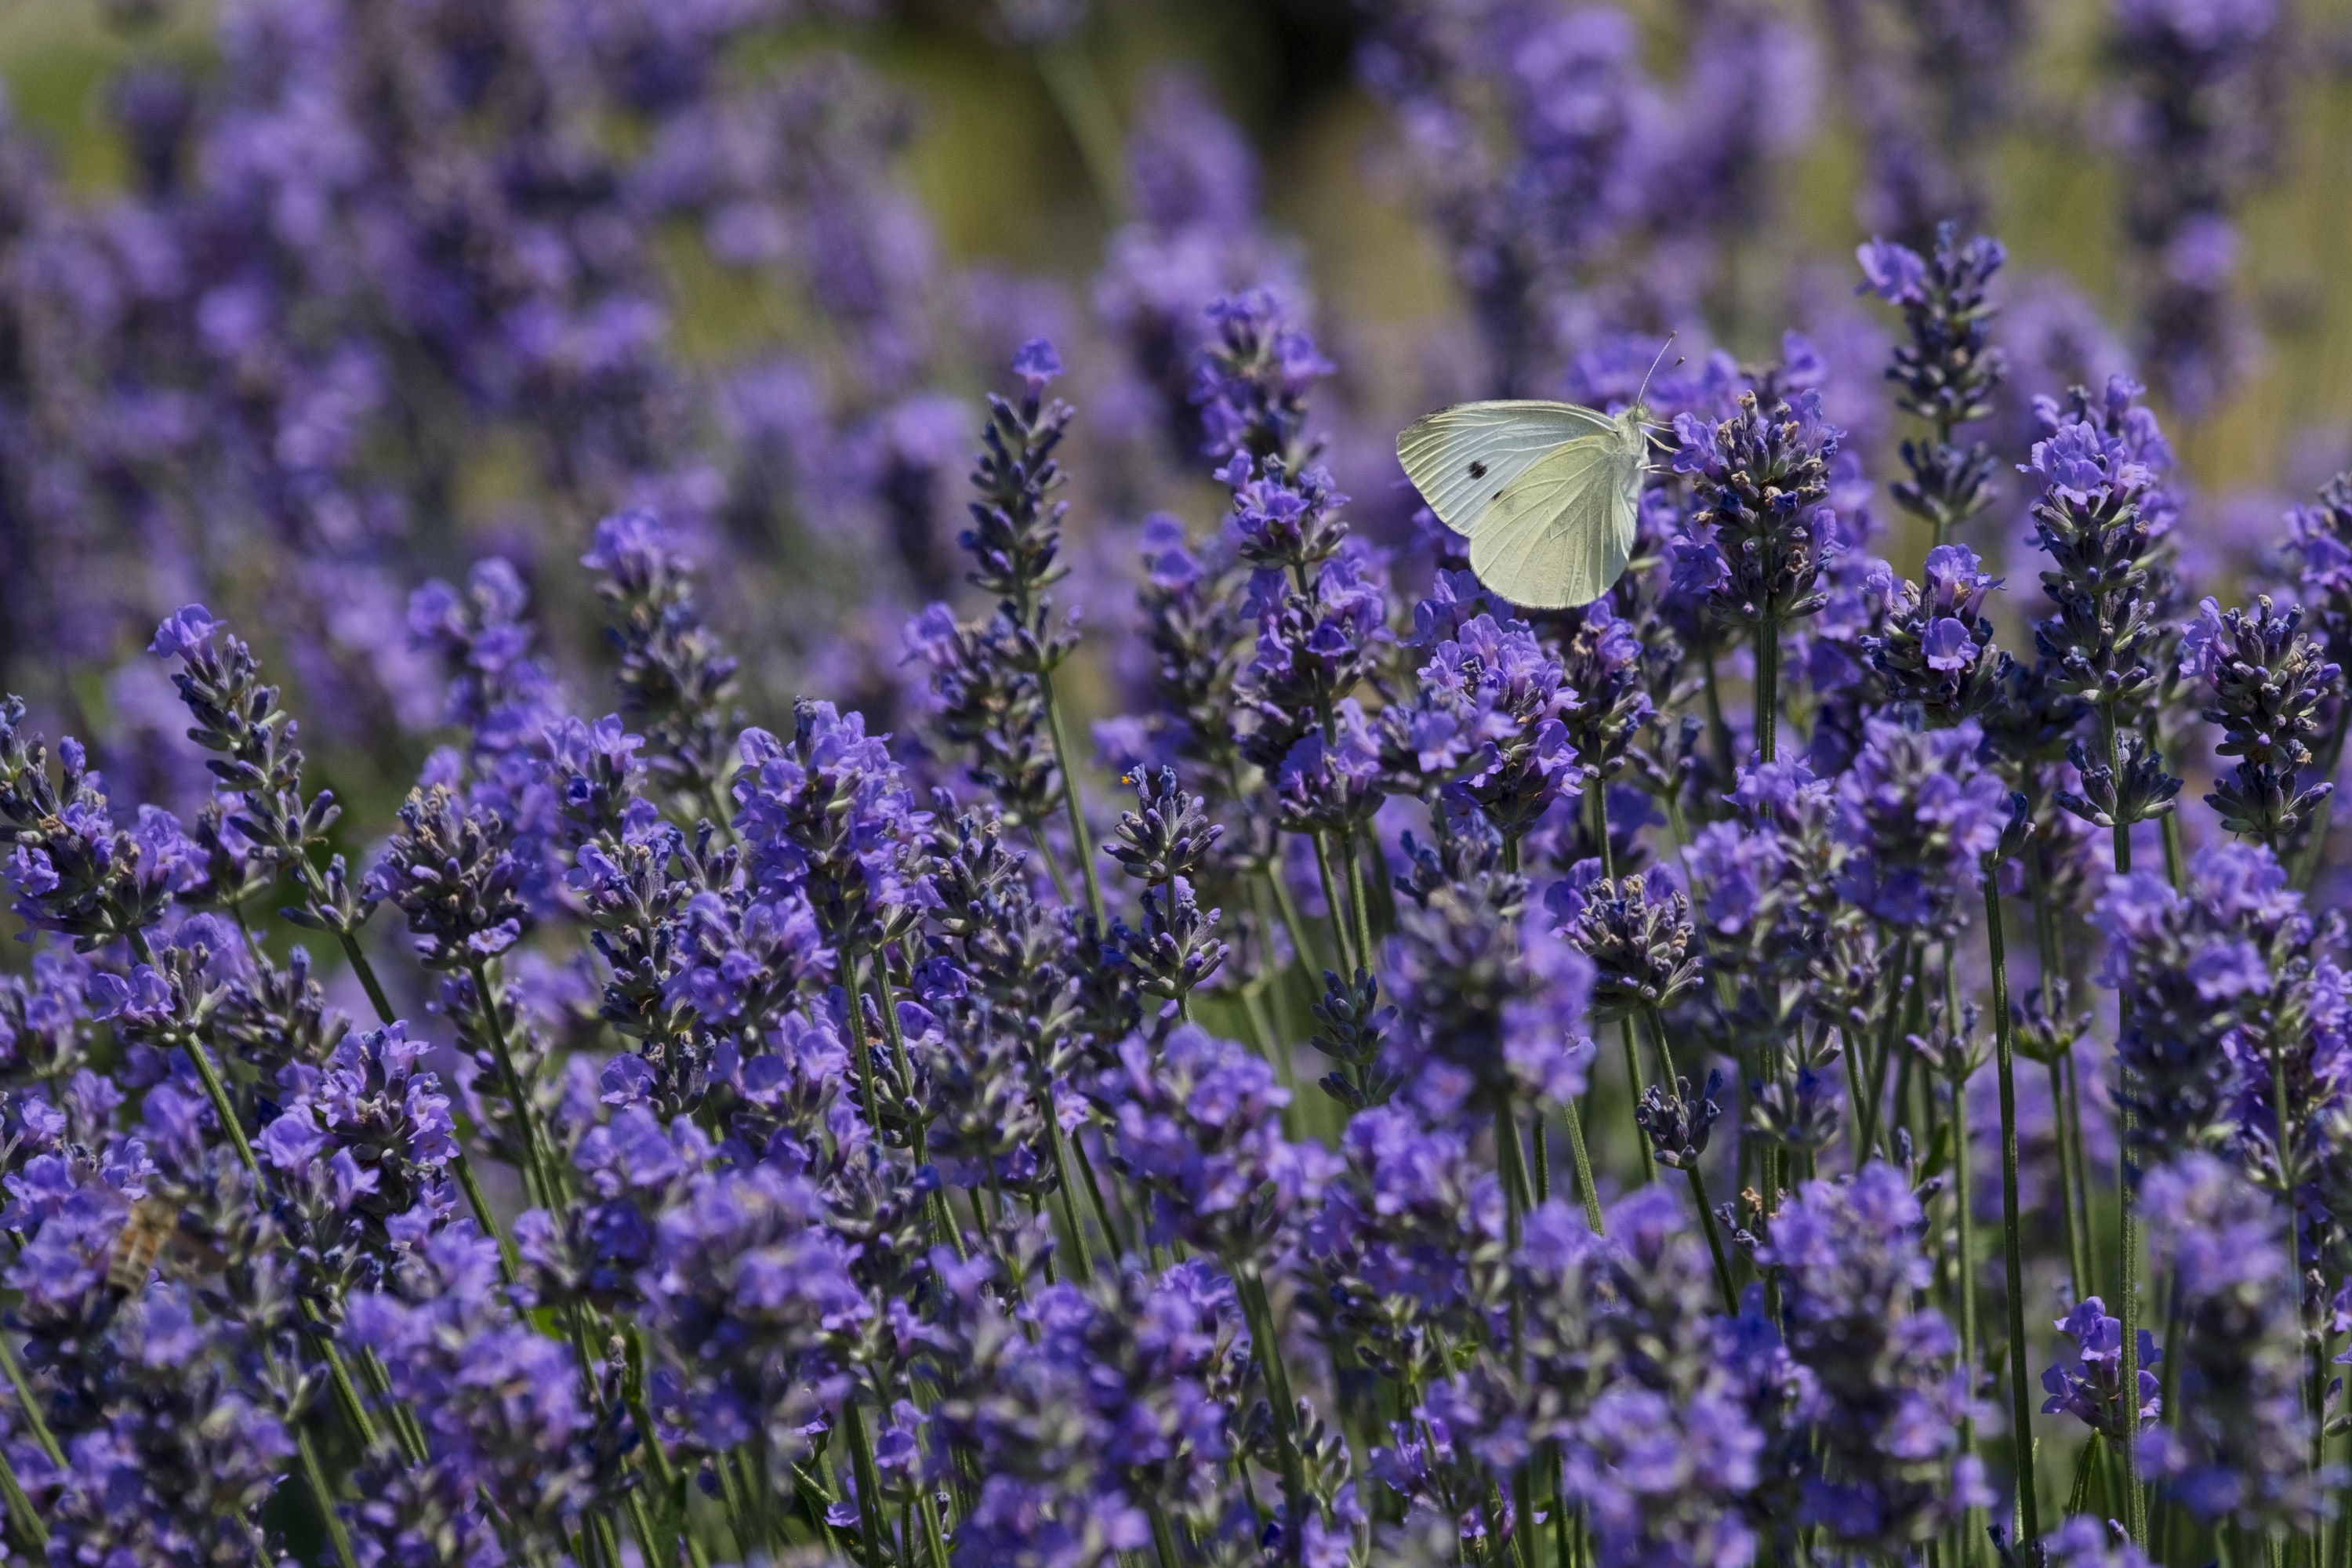 white butterfly on purple petaled flower